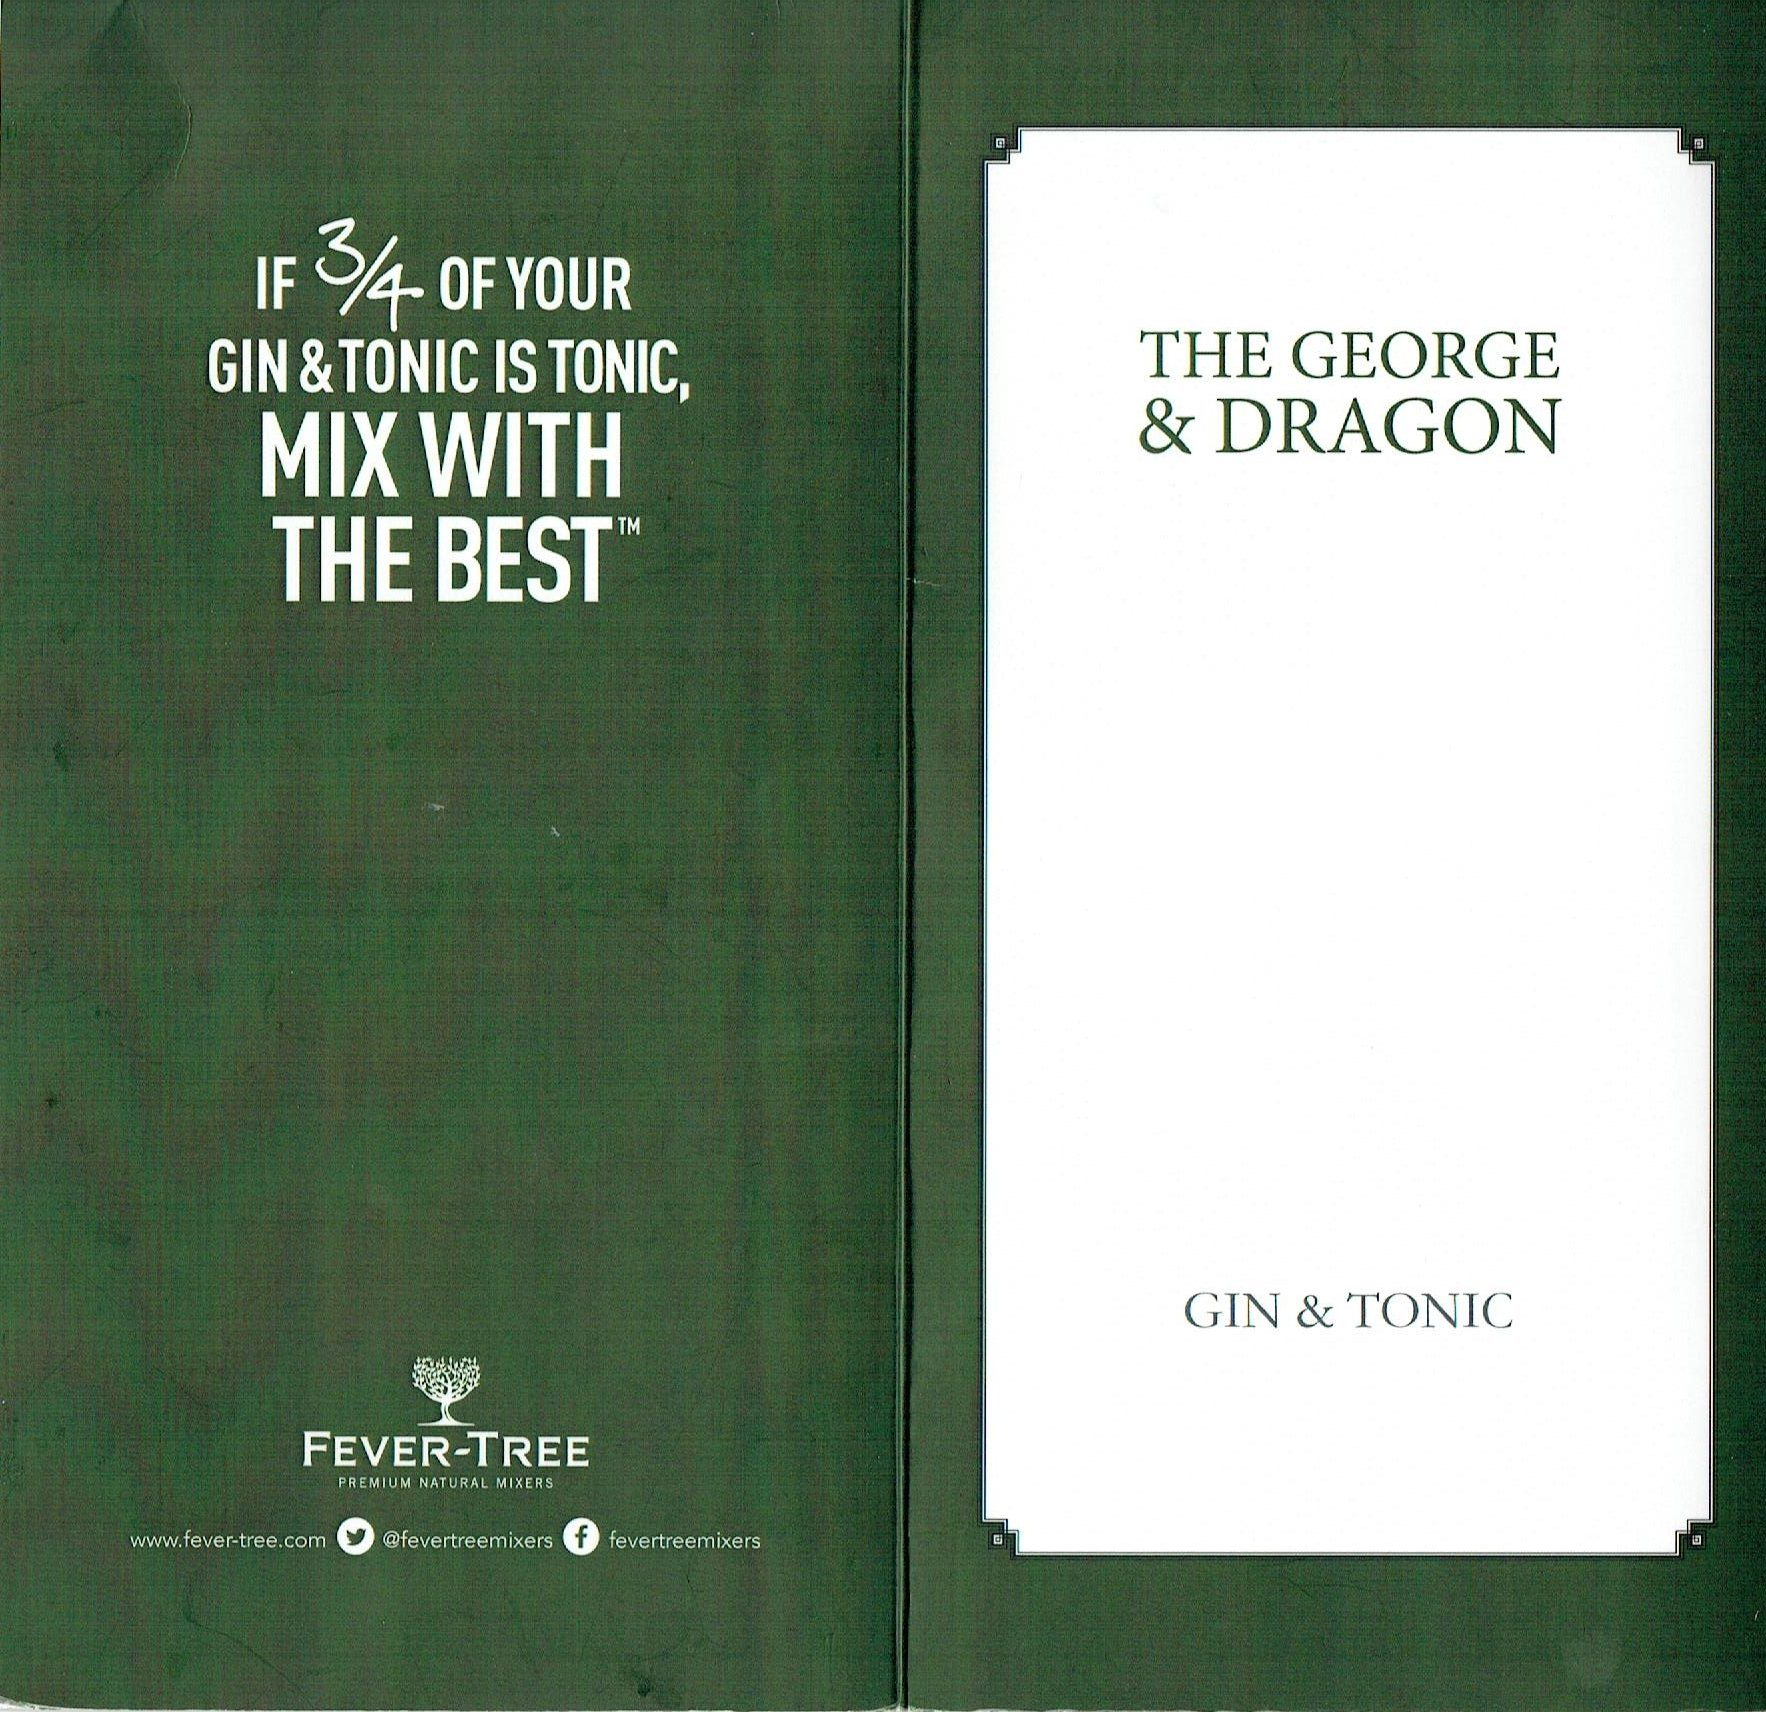 george-and-dragon-gin-menu-1-001